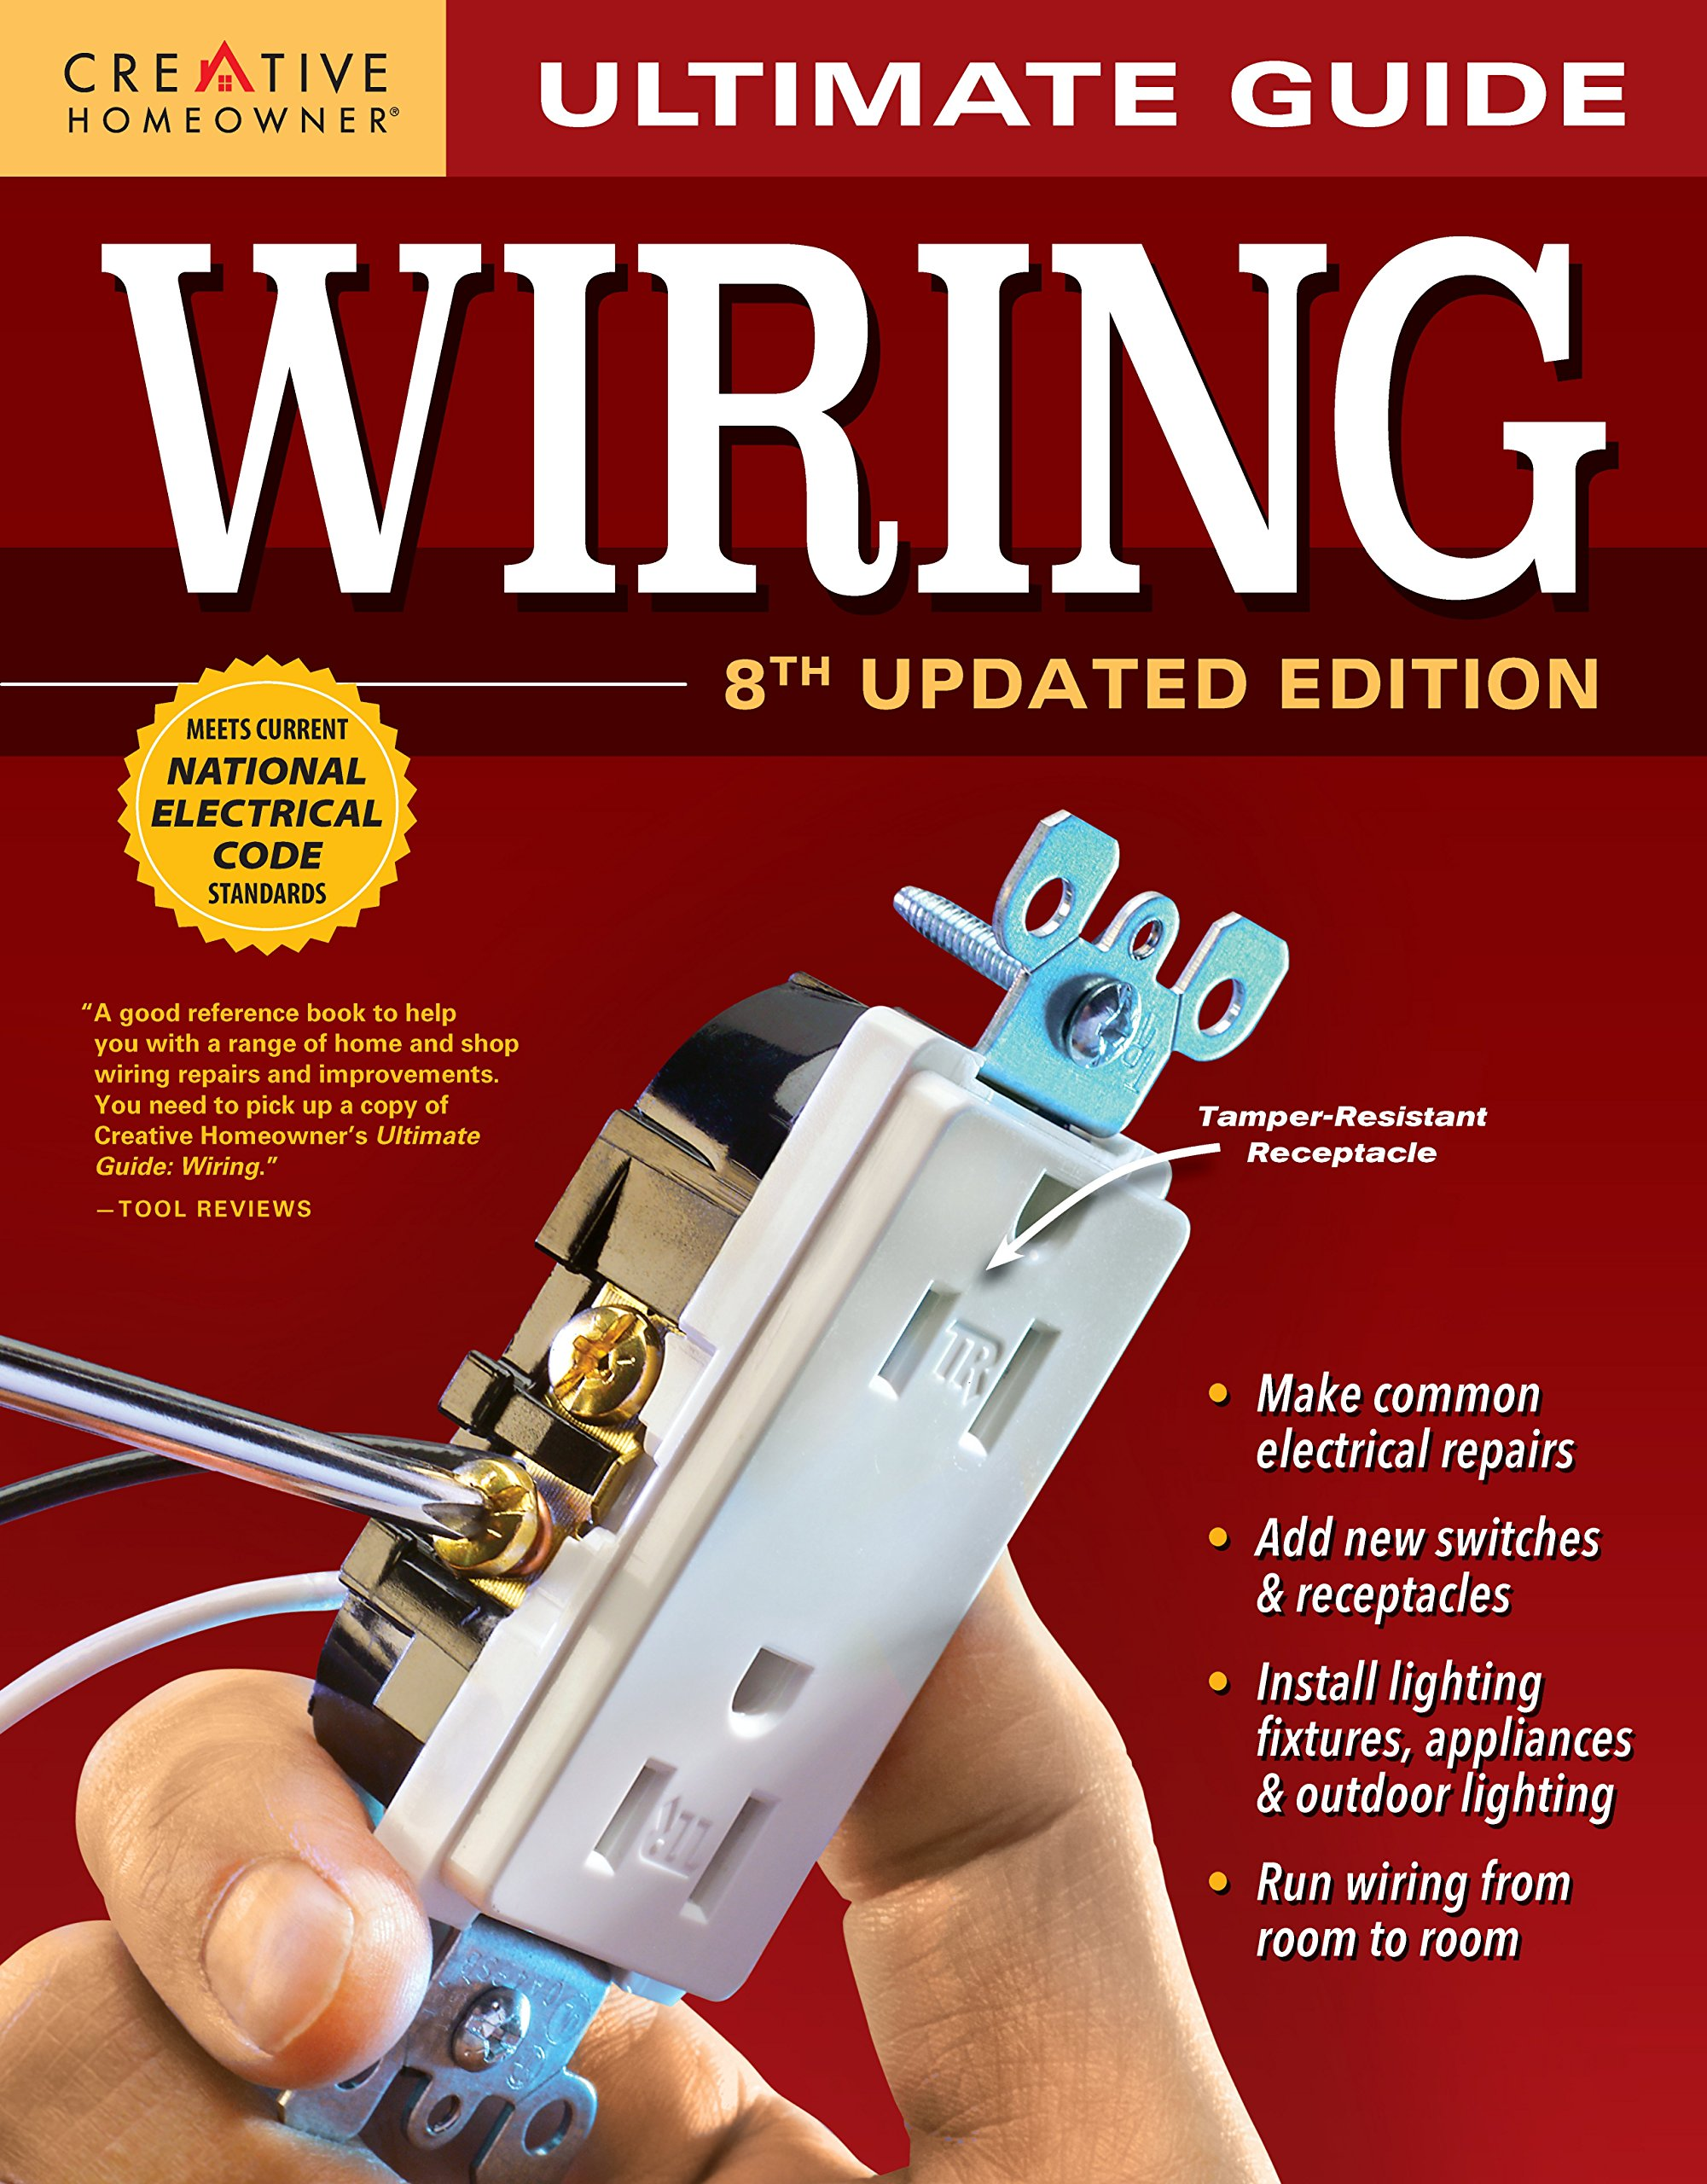 Surprising Ultimate Guide Wiring 8Th Updated Edition Creative Homeowner Diy Letkol Mohammedshrine Wiring Cloud Letkolmohammedshrineorg